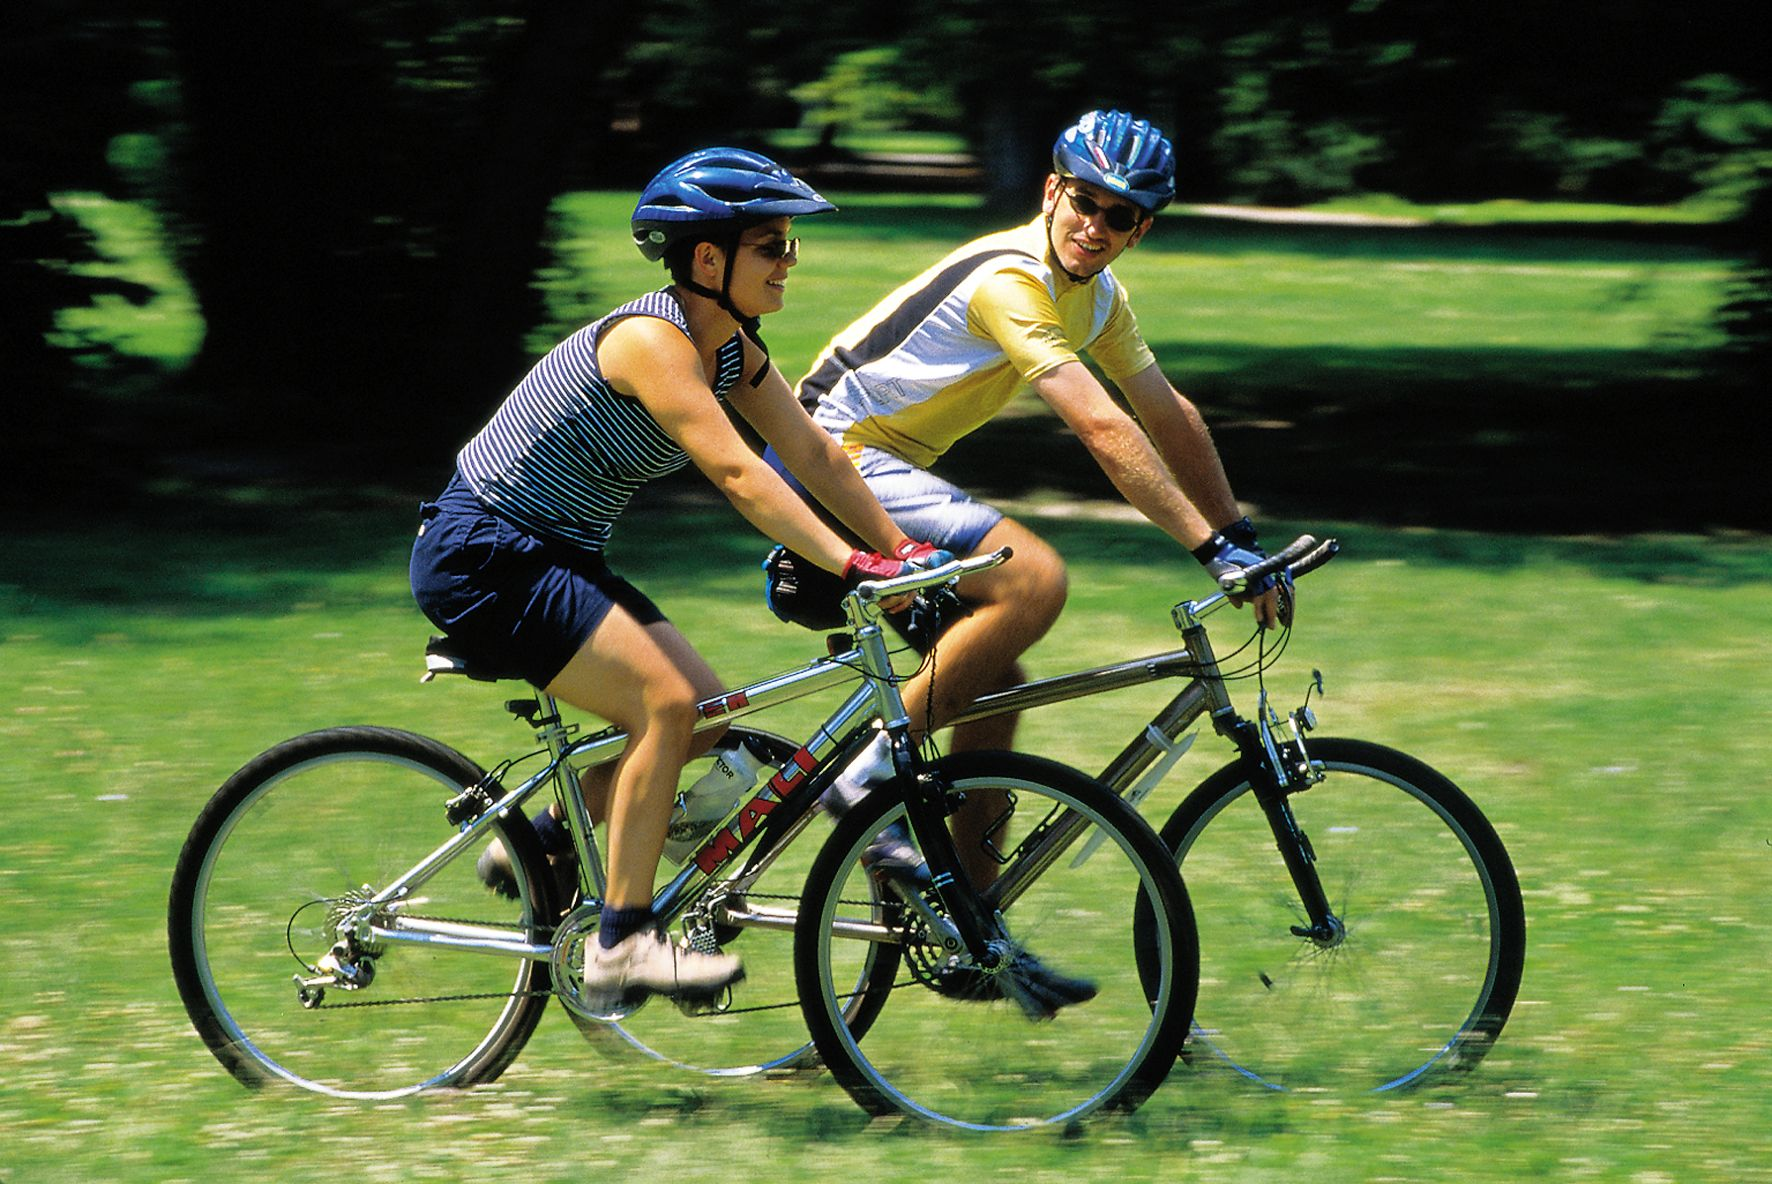 Cycling Improves General Muscle Function Gradually With Little